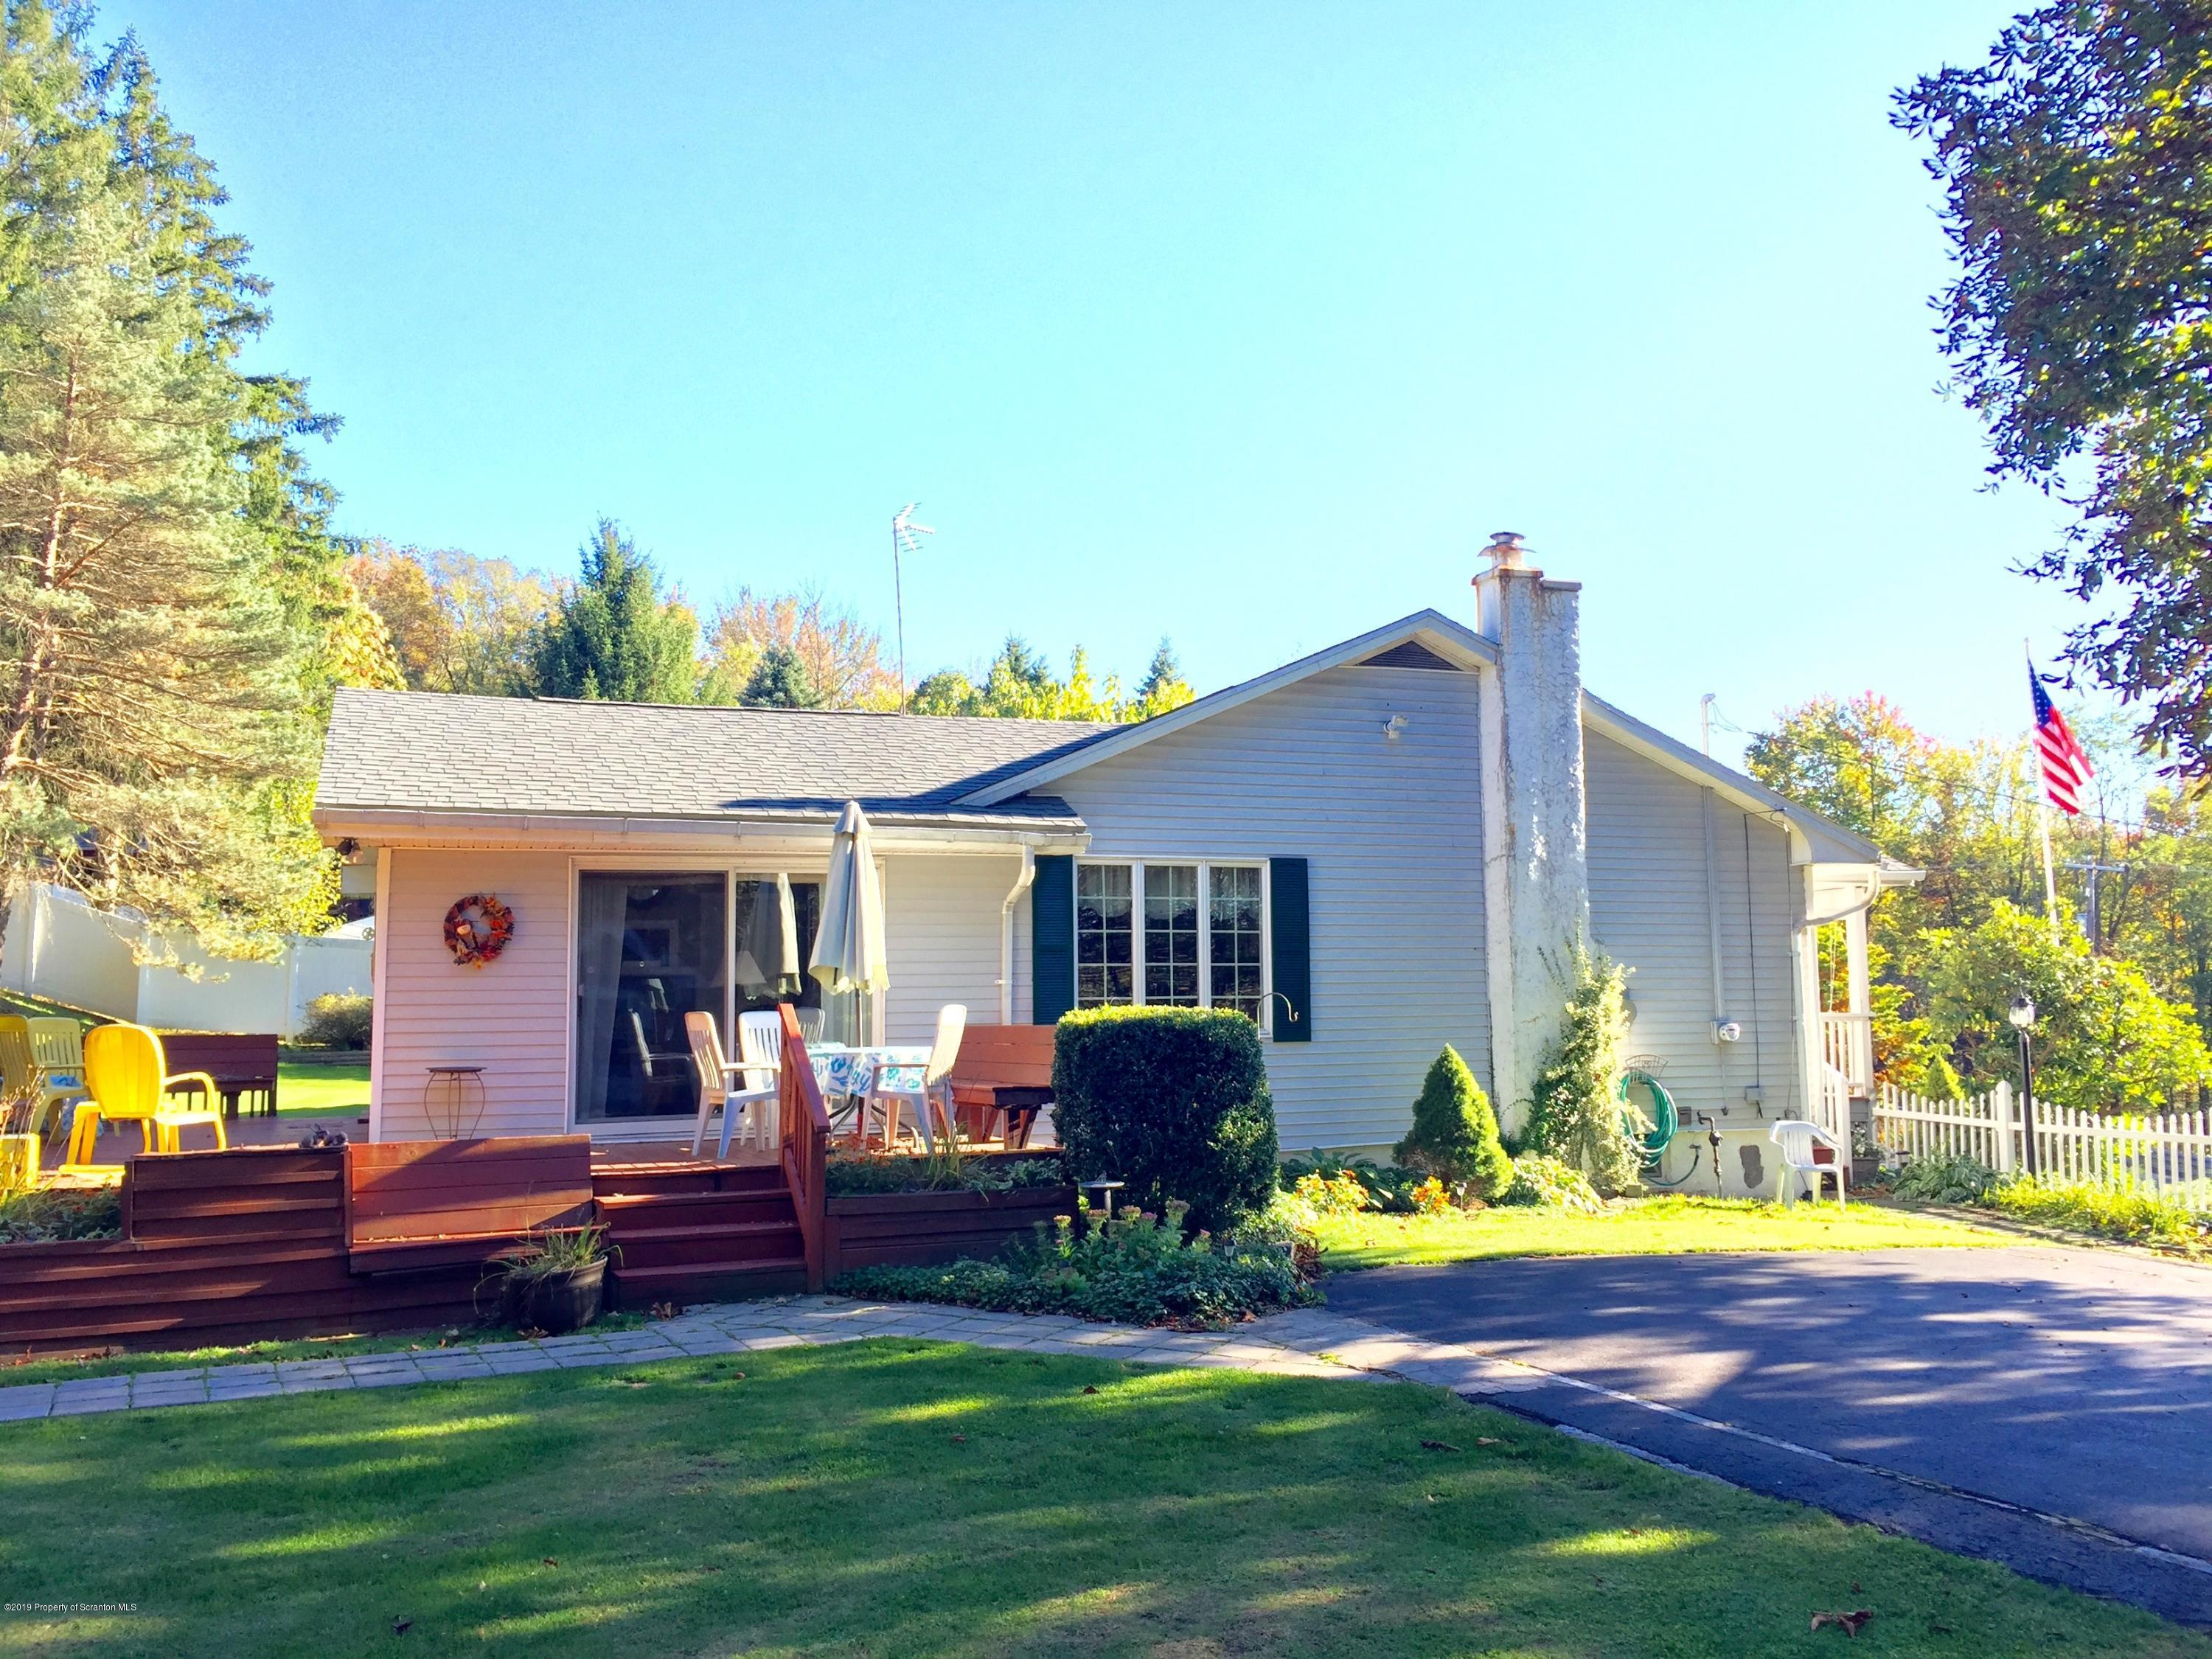 19 ROOSEVELT HWY, Carbondale Twp, Pennsylvania 18407, 3 Bedrooms Bedrooms, 7 Rooms Rooms,2 BathroomsBathrooms,Single Family,For Sale,ROOSEVELT,19-5084